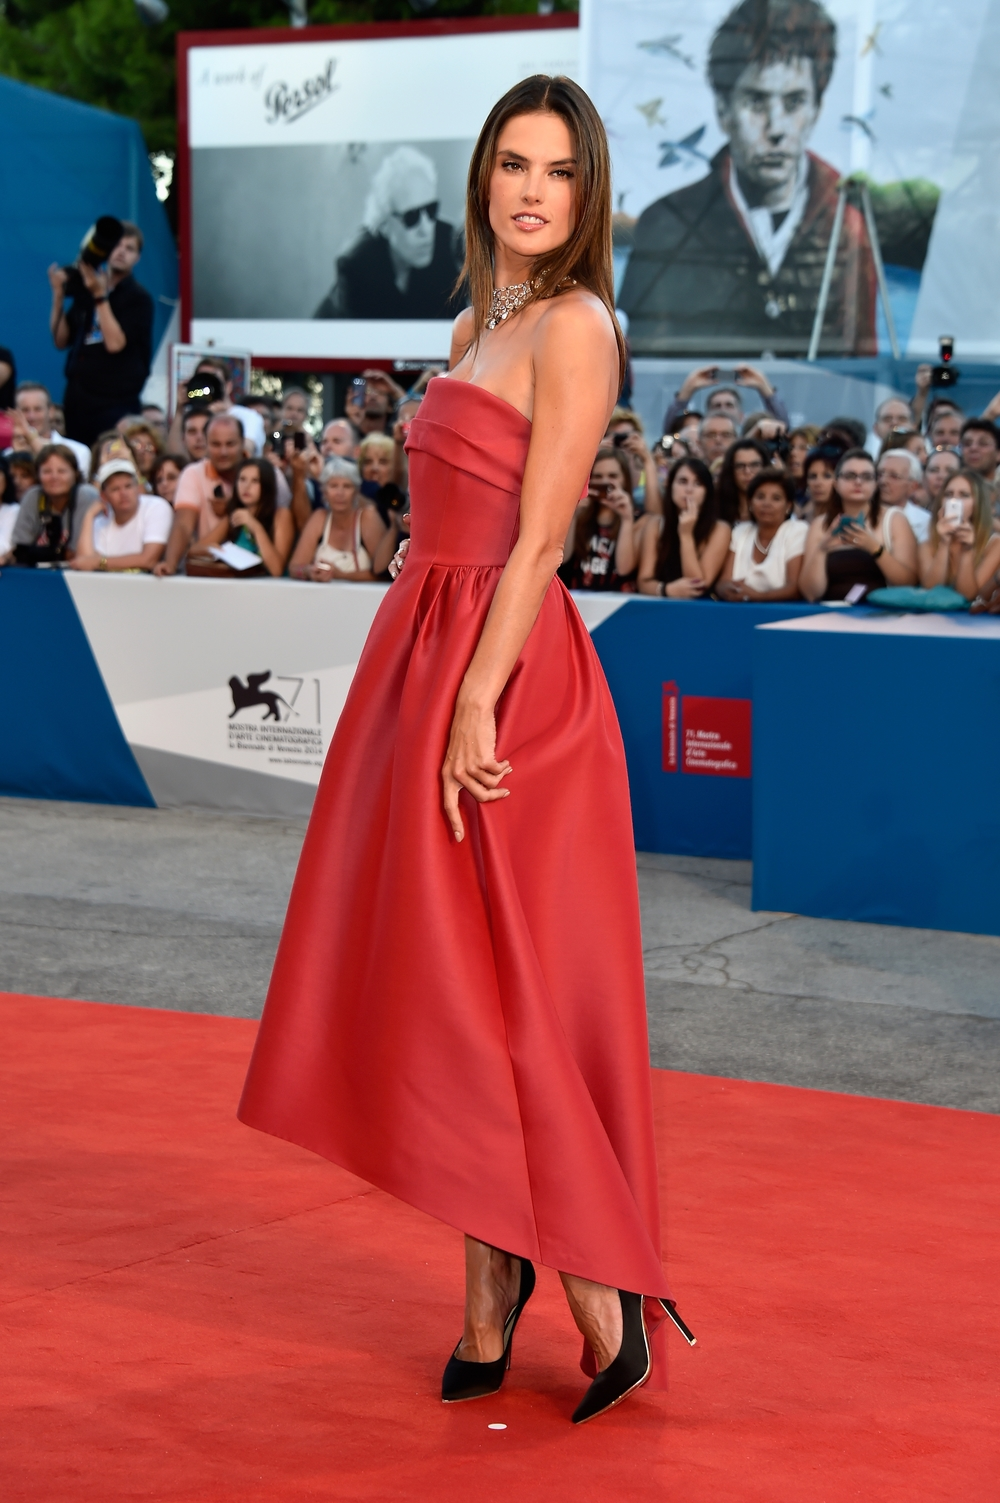 Alessandra Ambrosio Venice Film Festival Premiere of film La Rancon De La Gloire Getty Images high res (1).jpg